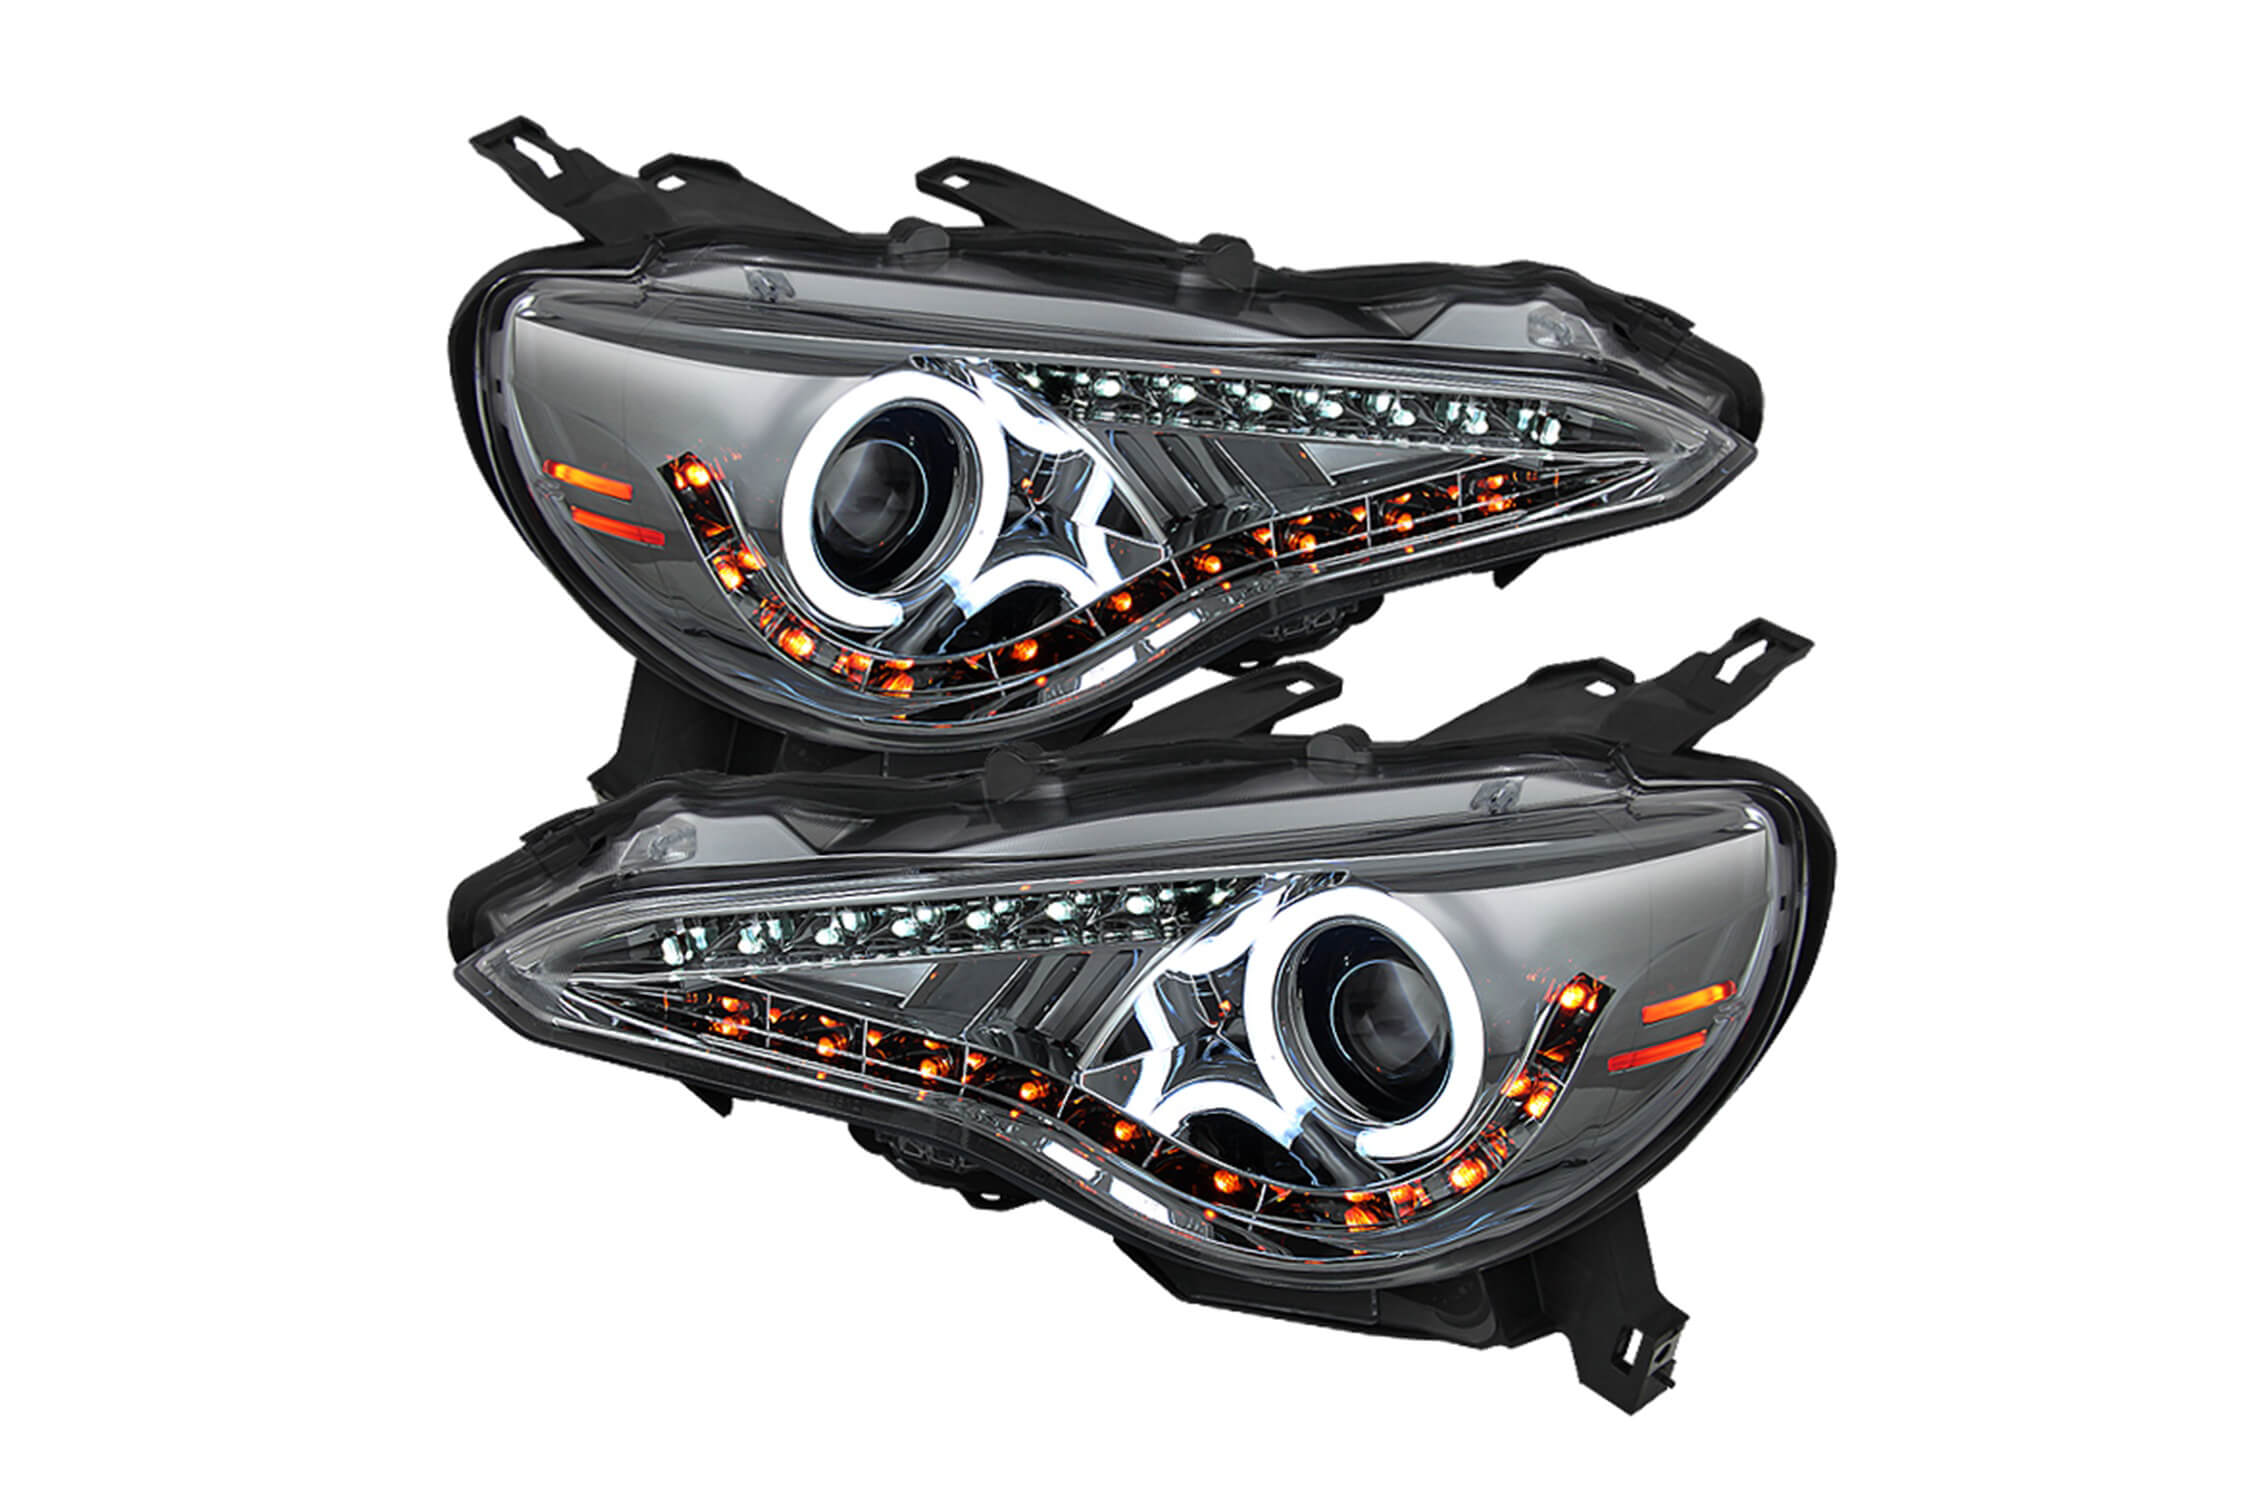 spyder projector head lights 5 spyder projector headlights set fast & free shipping! lund visor wiring harness at crackthecode.co